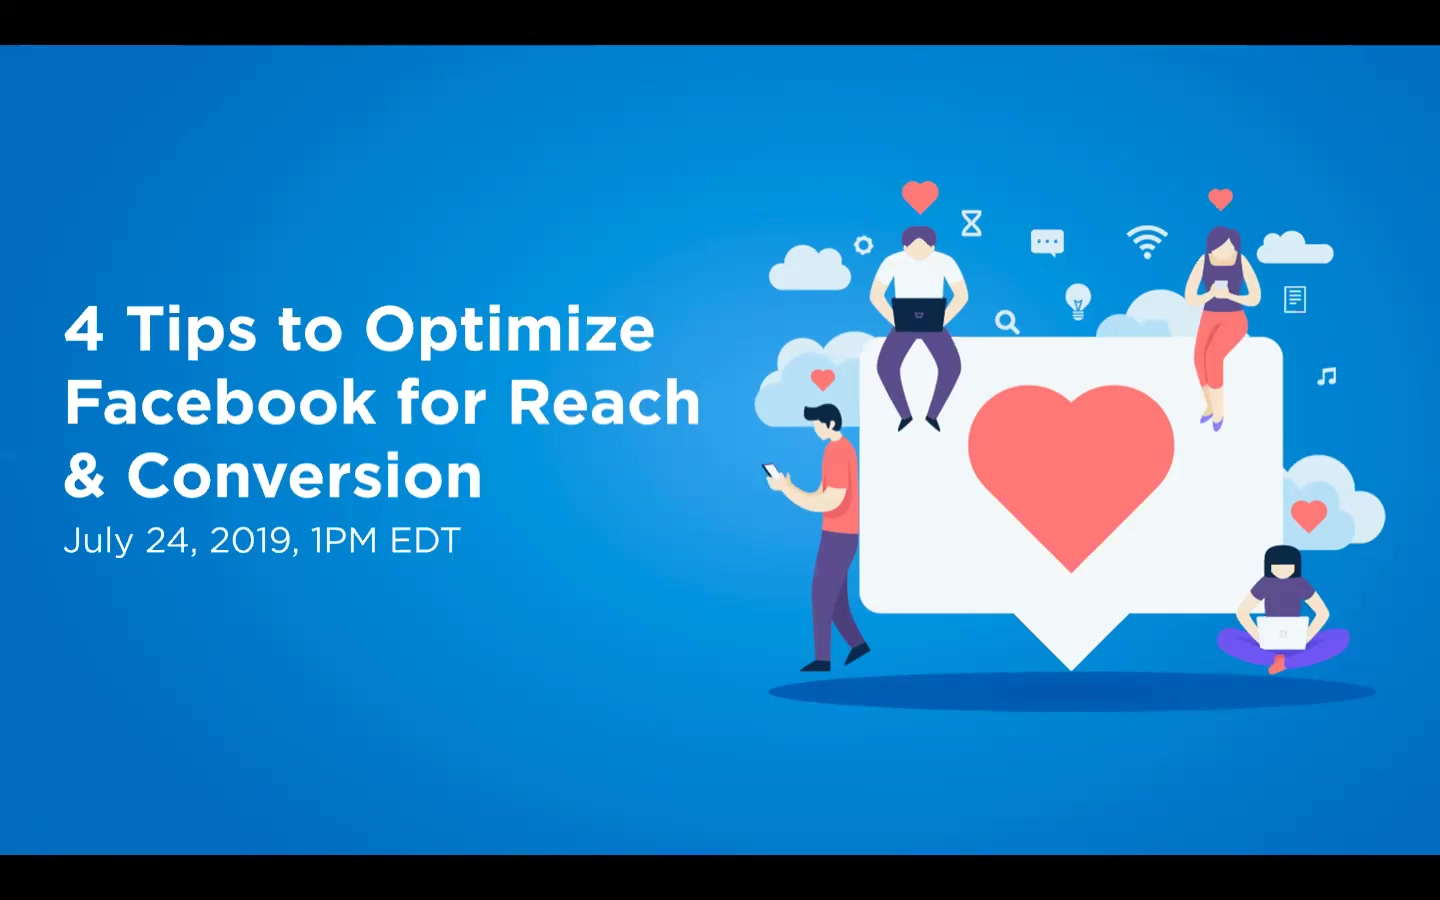 4 Tips For Optimizing Facebook